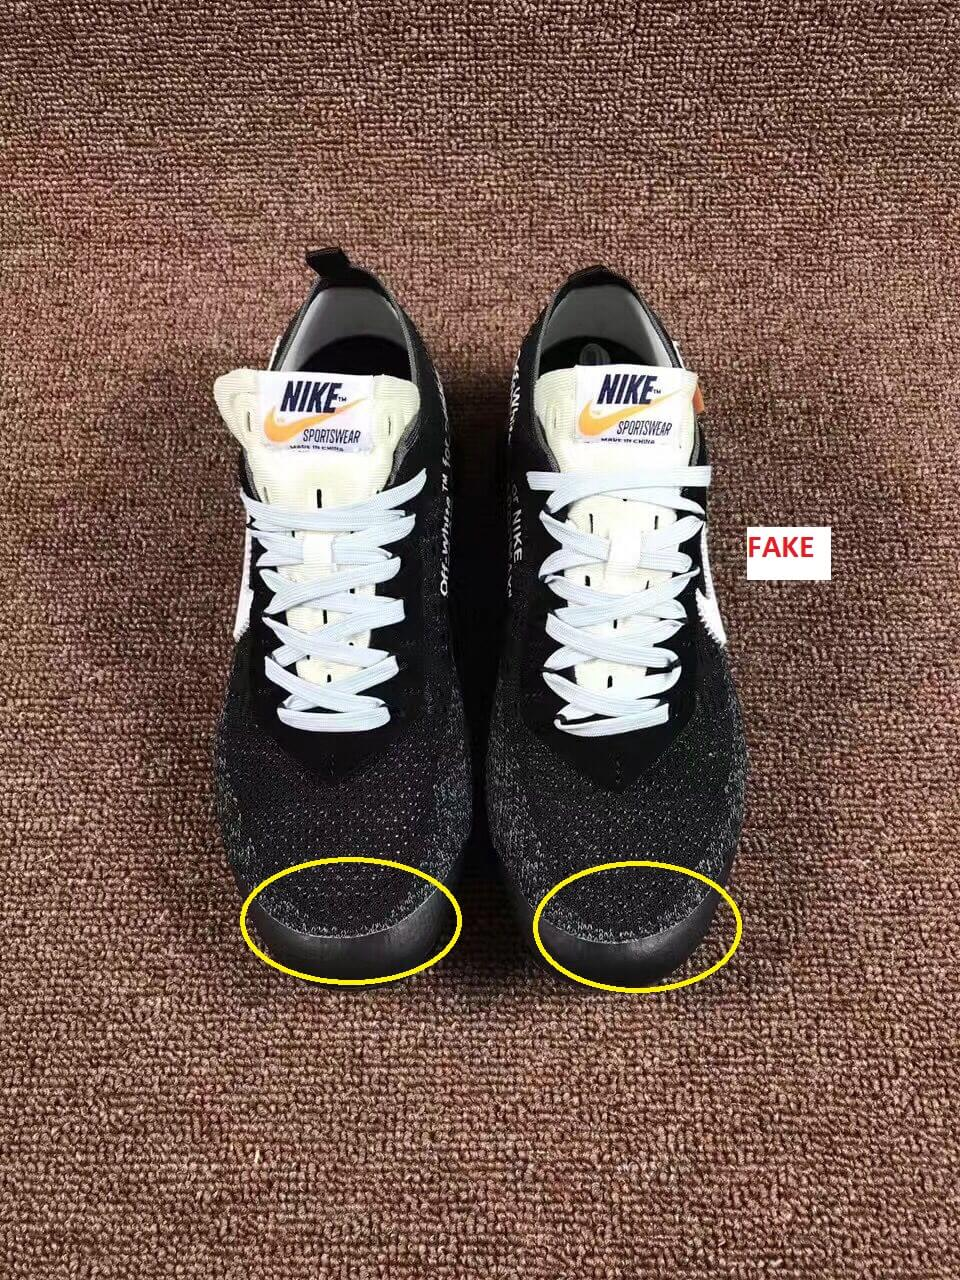 new arrivals authentic quality buy online Scary Good Fake Off White Nike Air Vapormax Sneakers Are On ...